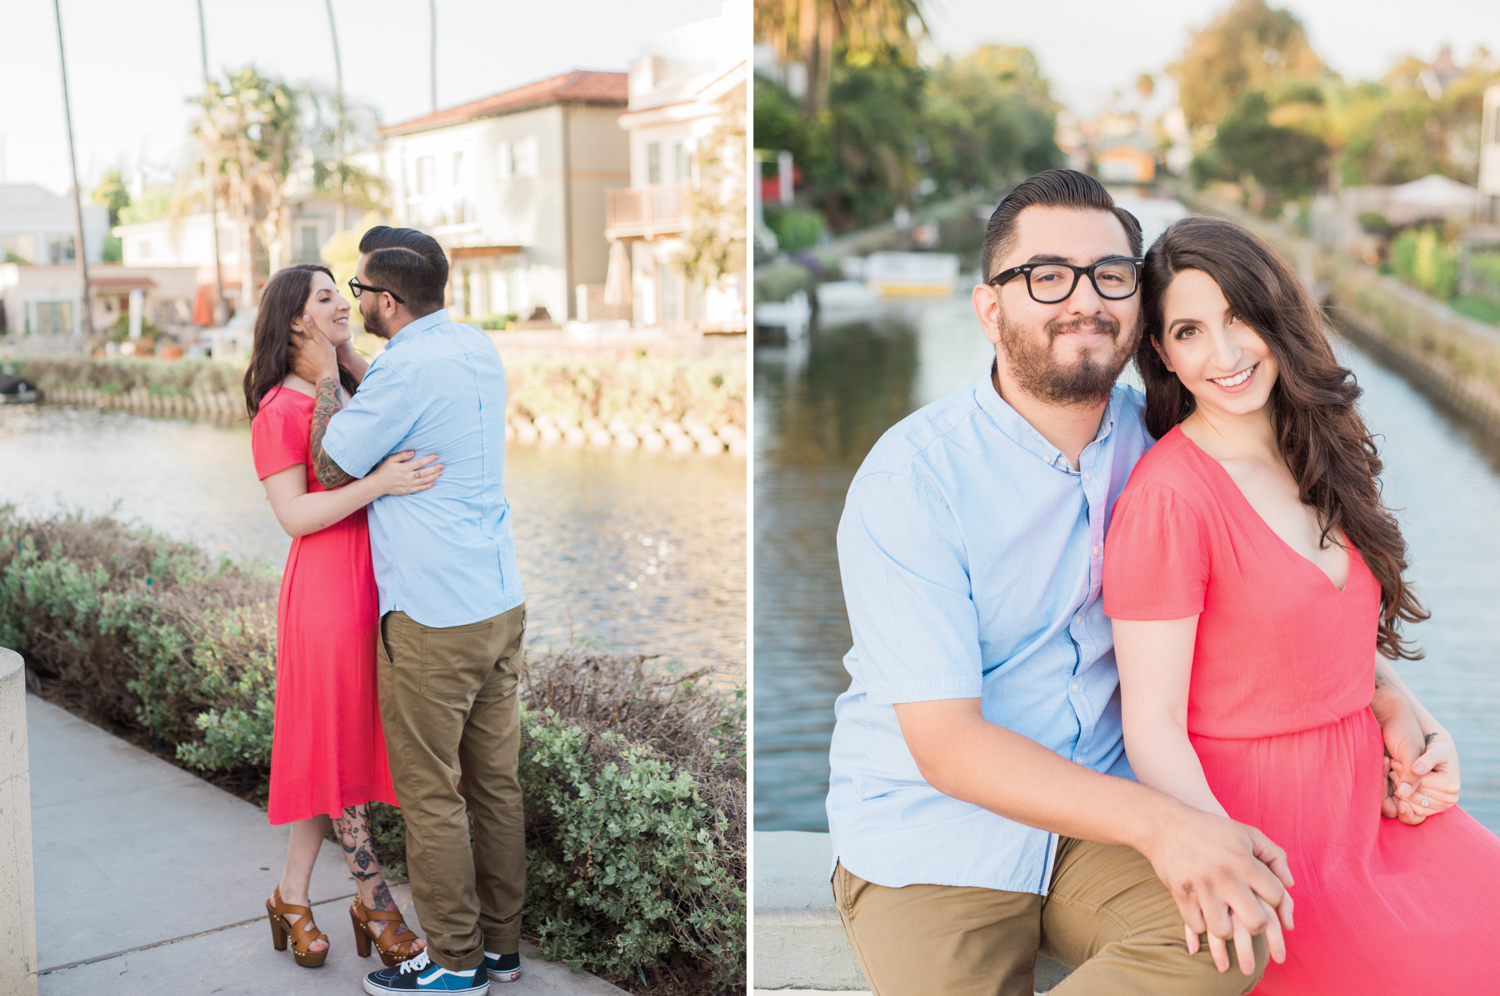 lauren&anthony-venice-canals-engagement-session-photography-los-angeles-wedding-photographer-venice-5.jpg